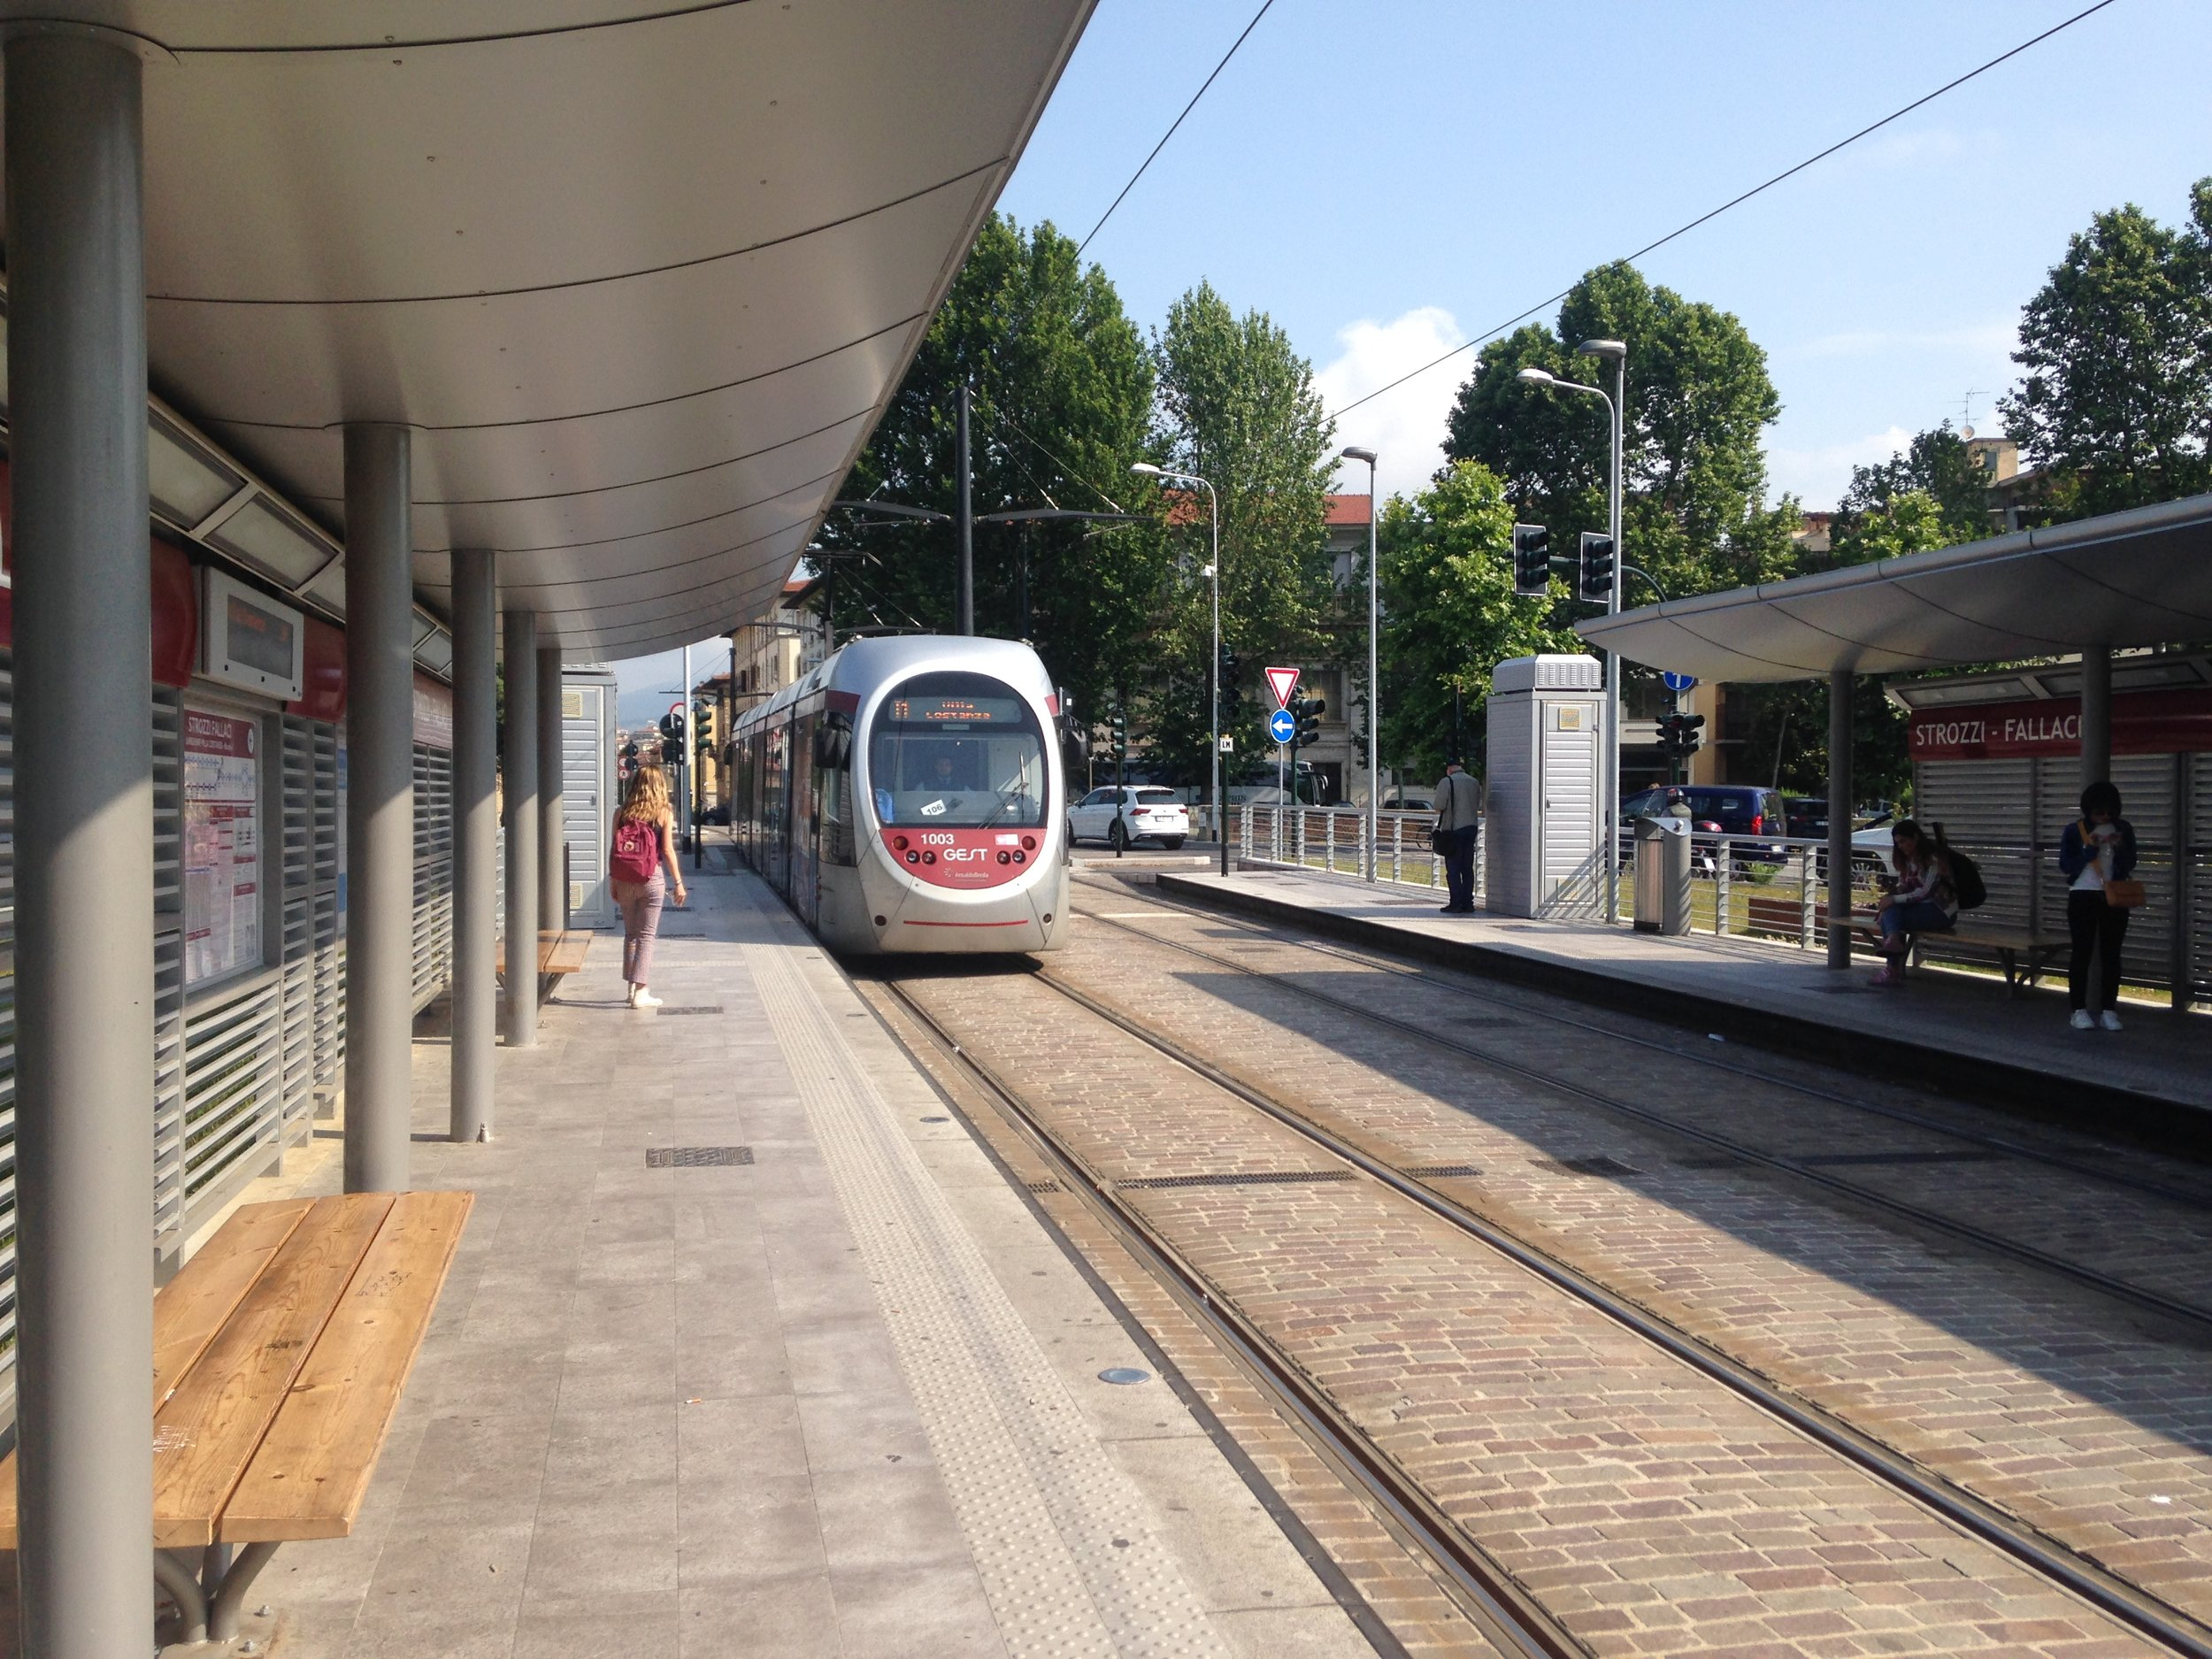 Tram arrives at strozzi-fallaci 2nd stop from firenze smn train station